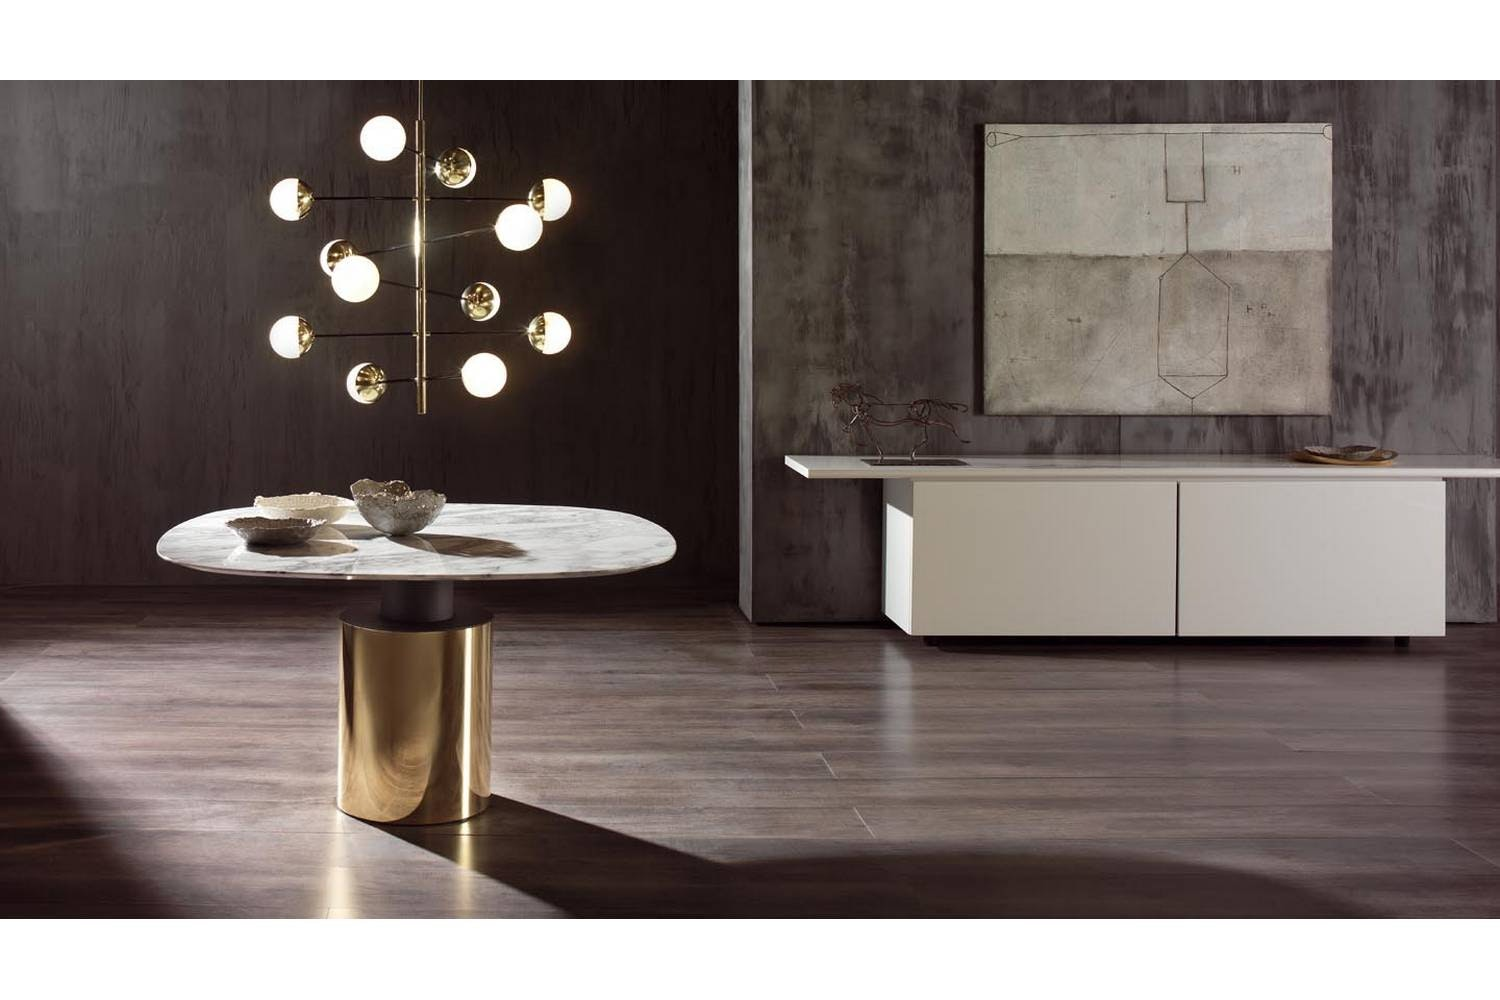 Creso Table by Lella & Massimo Vignelli for Acerbis